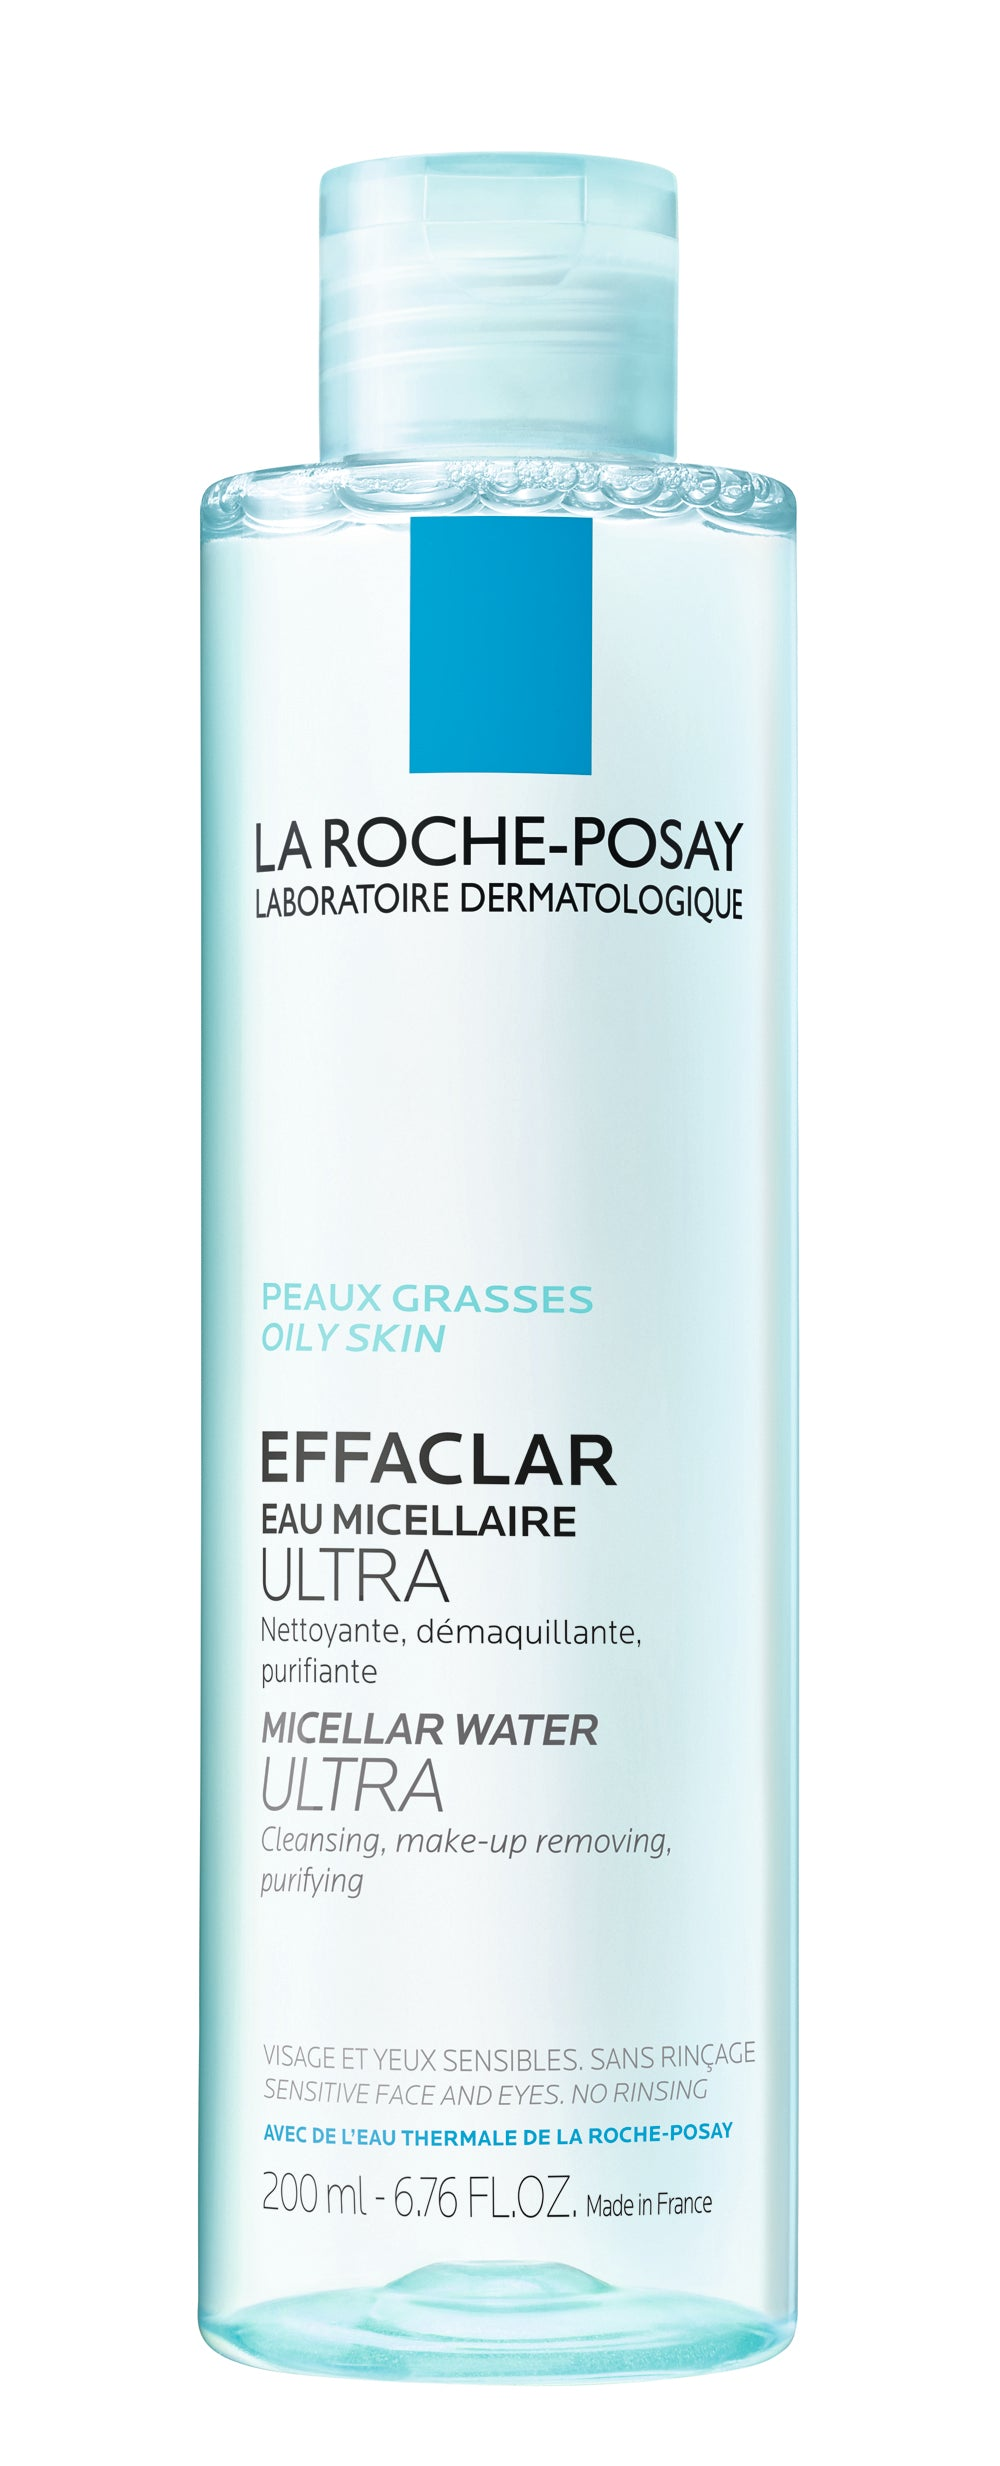 Effaclar Micellair Water 200ml